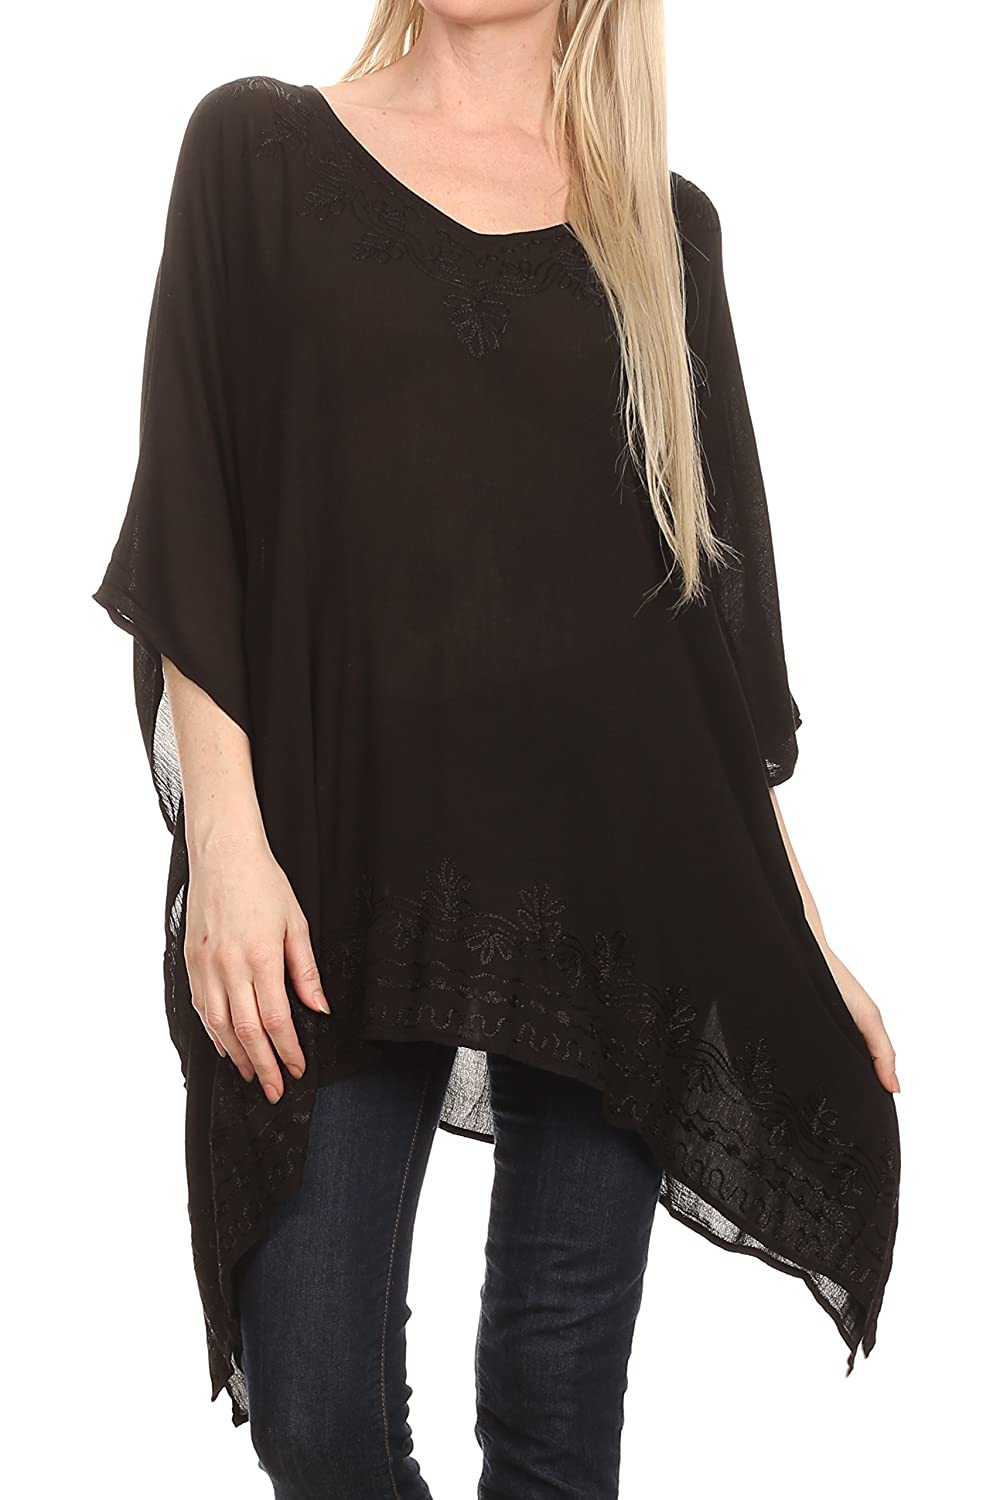 2e28a20b5ca259 ... UK 6-26) Max bust size: 51 inches (129.5cm), 30.5 inches (77.4cm)].  Approximate Length = 30.5 inches ( 77.4 cm ) Measured shoulder to hem. This  poncho ...